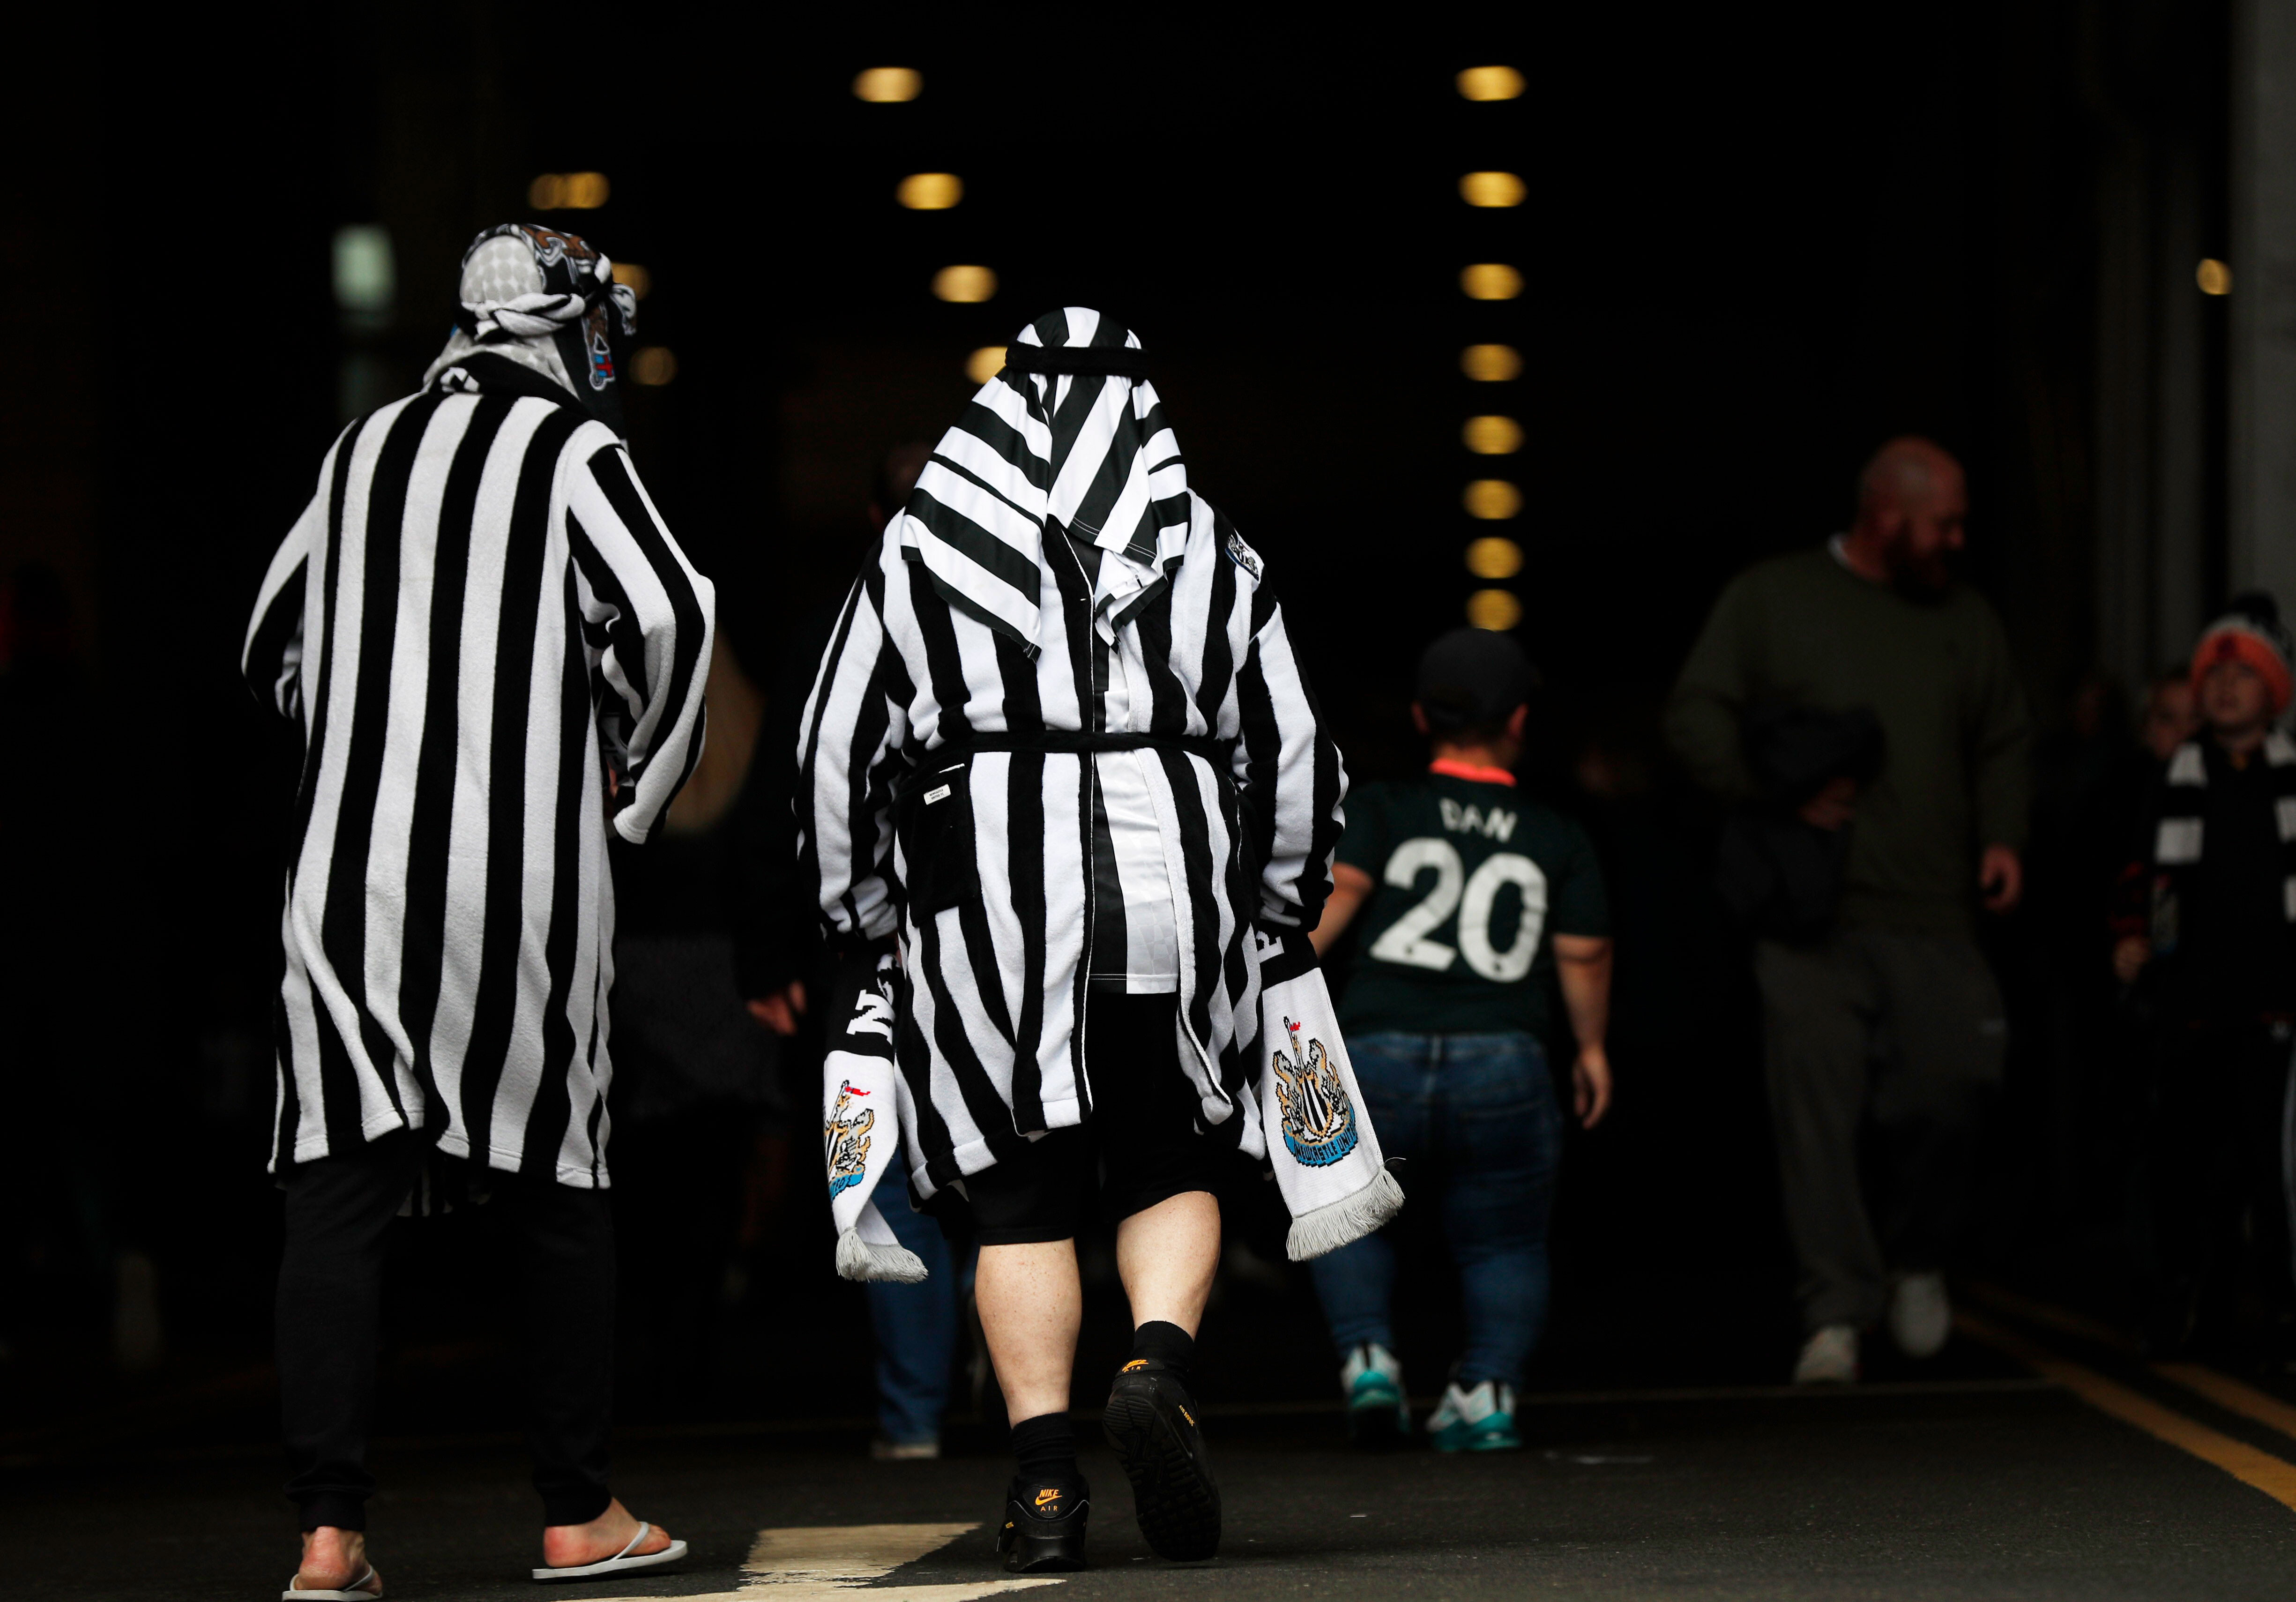 Newcastle United urges fans to not wear mock Arab head coverings following Saudi takeover